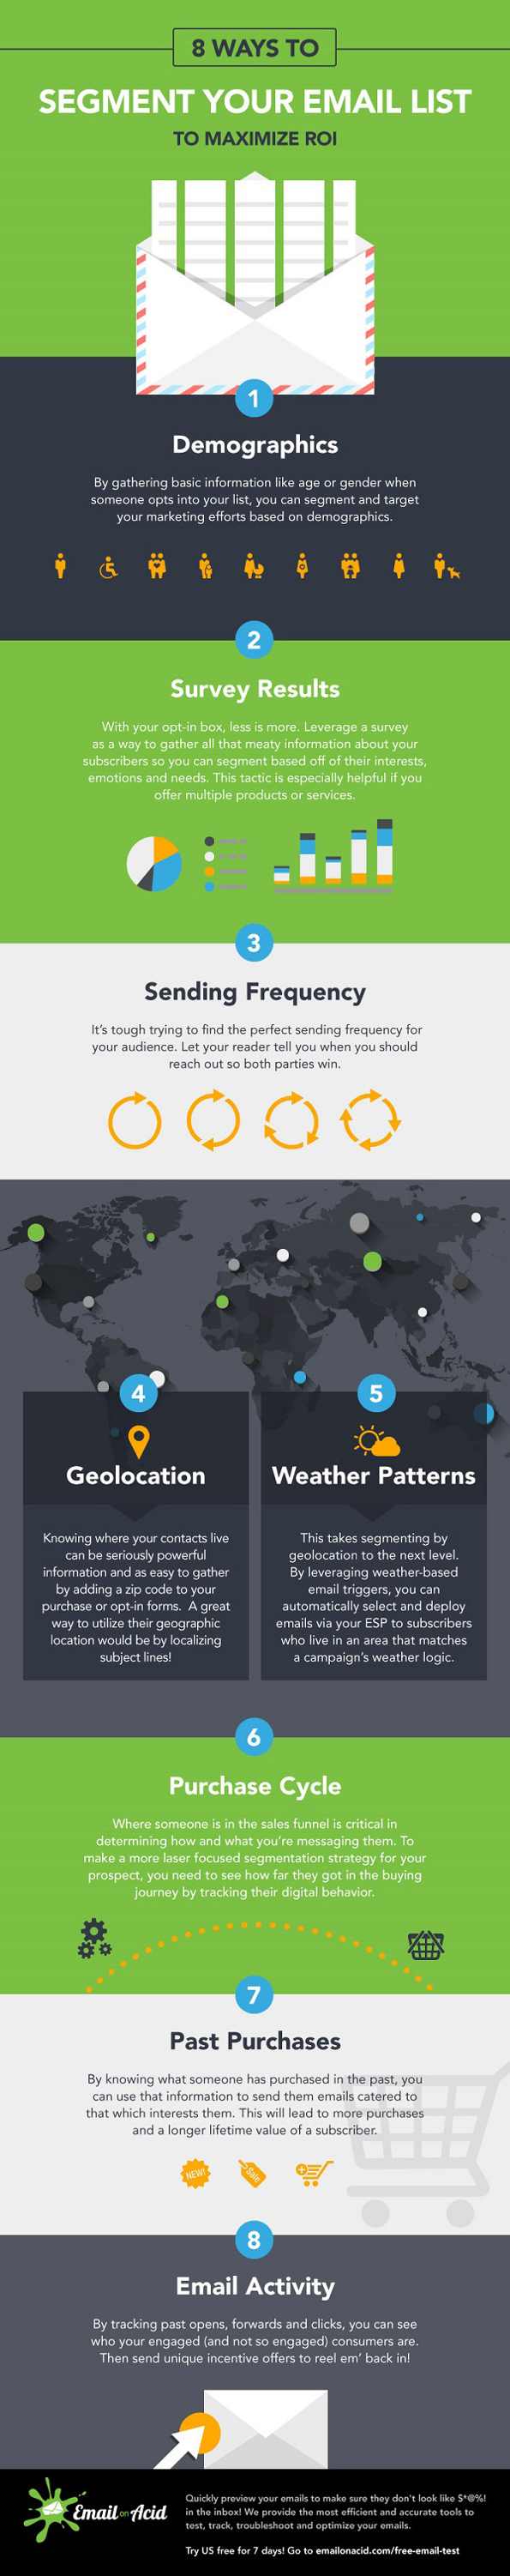 How to Segment Your Email List for Maximum ROI Infographic image